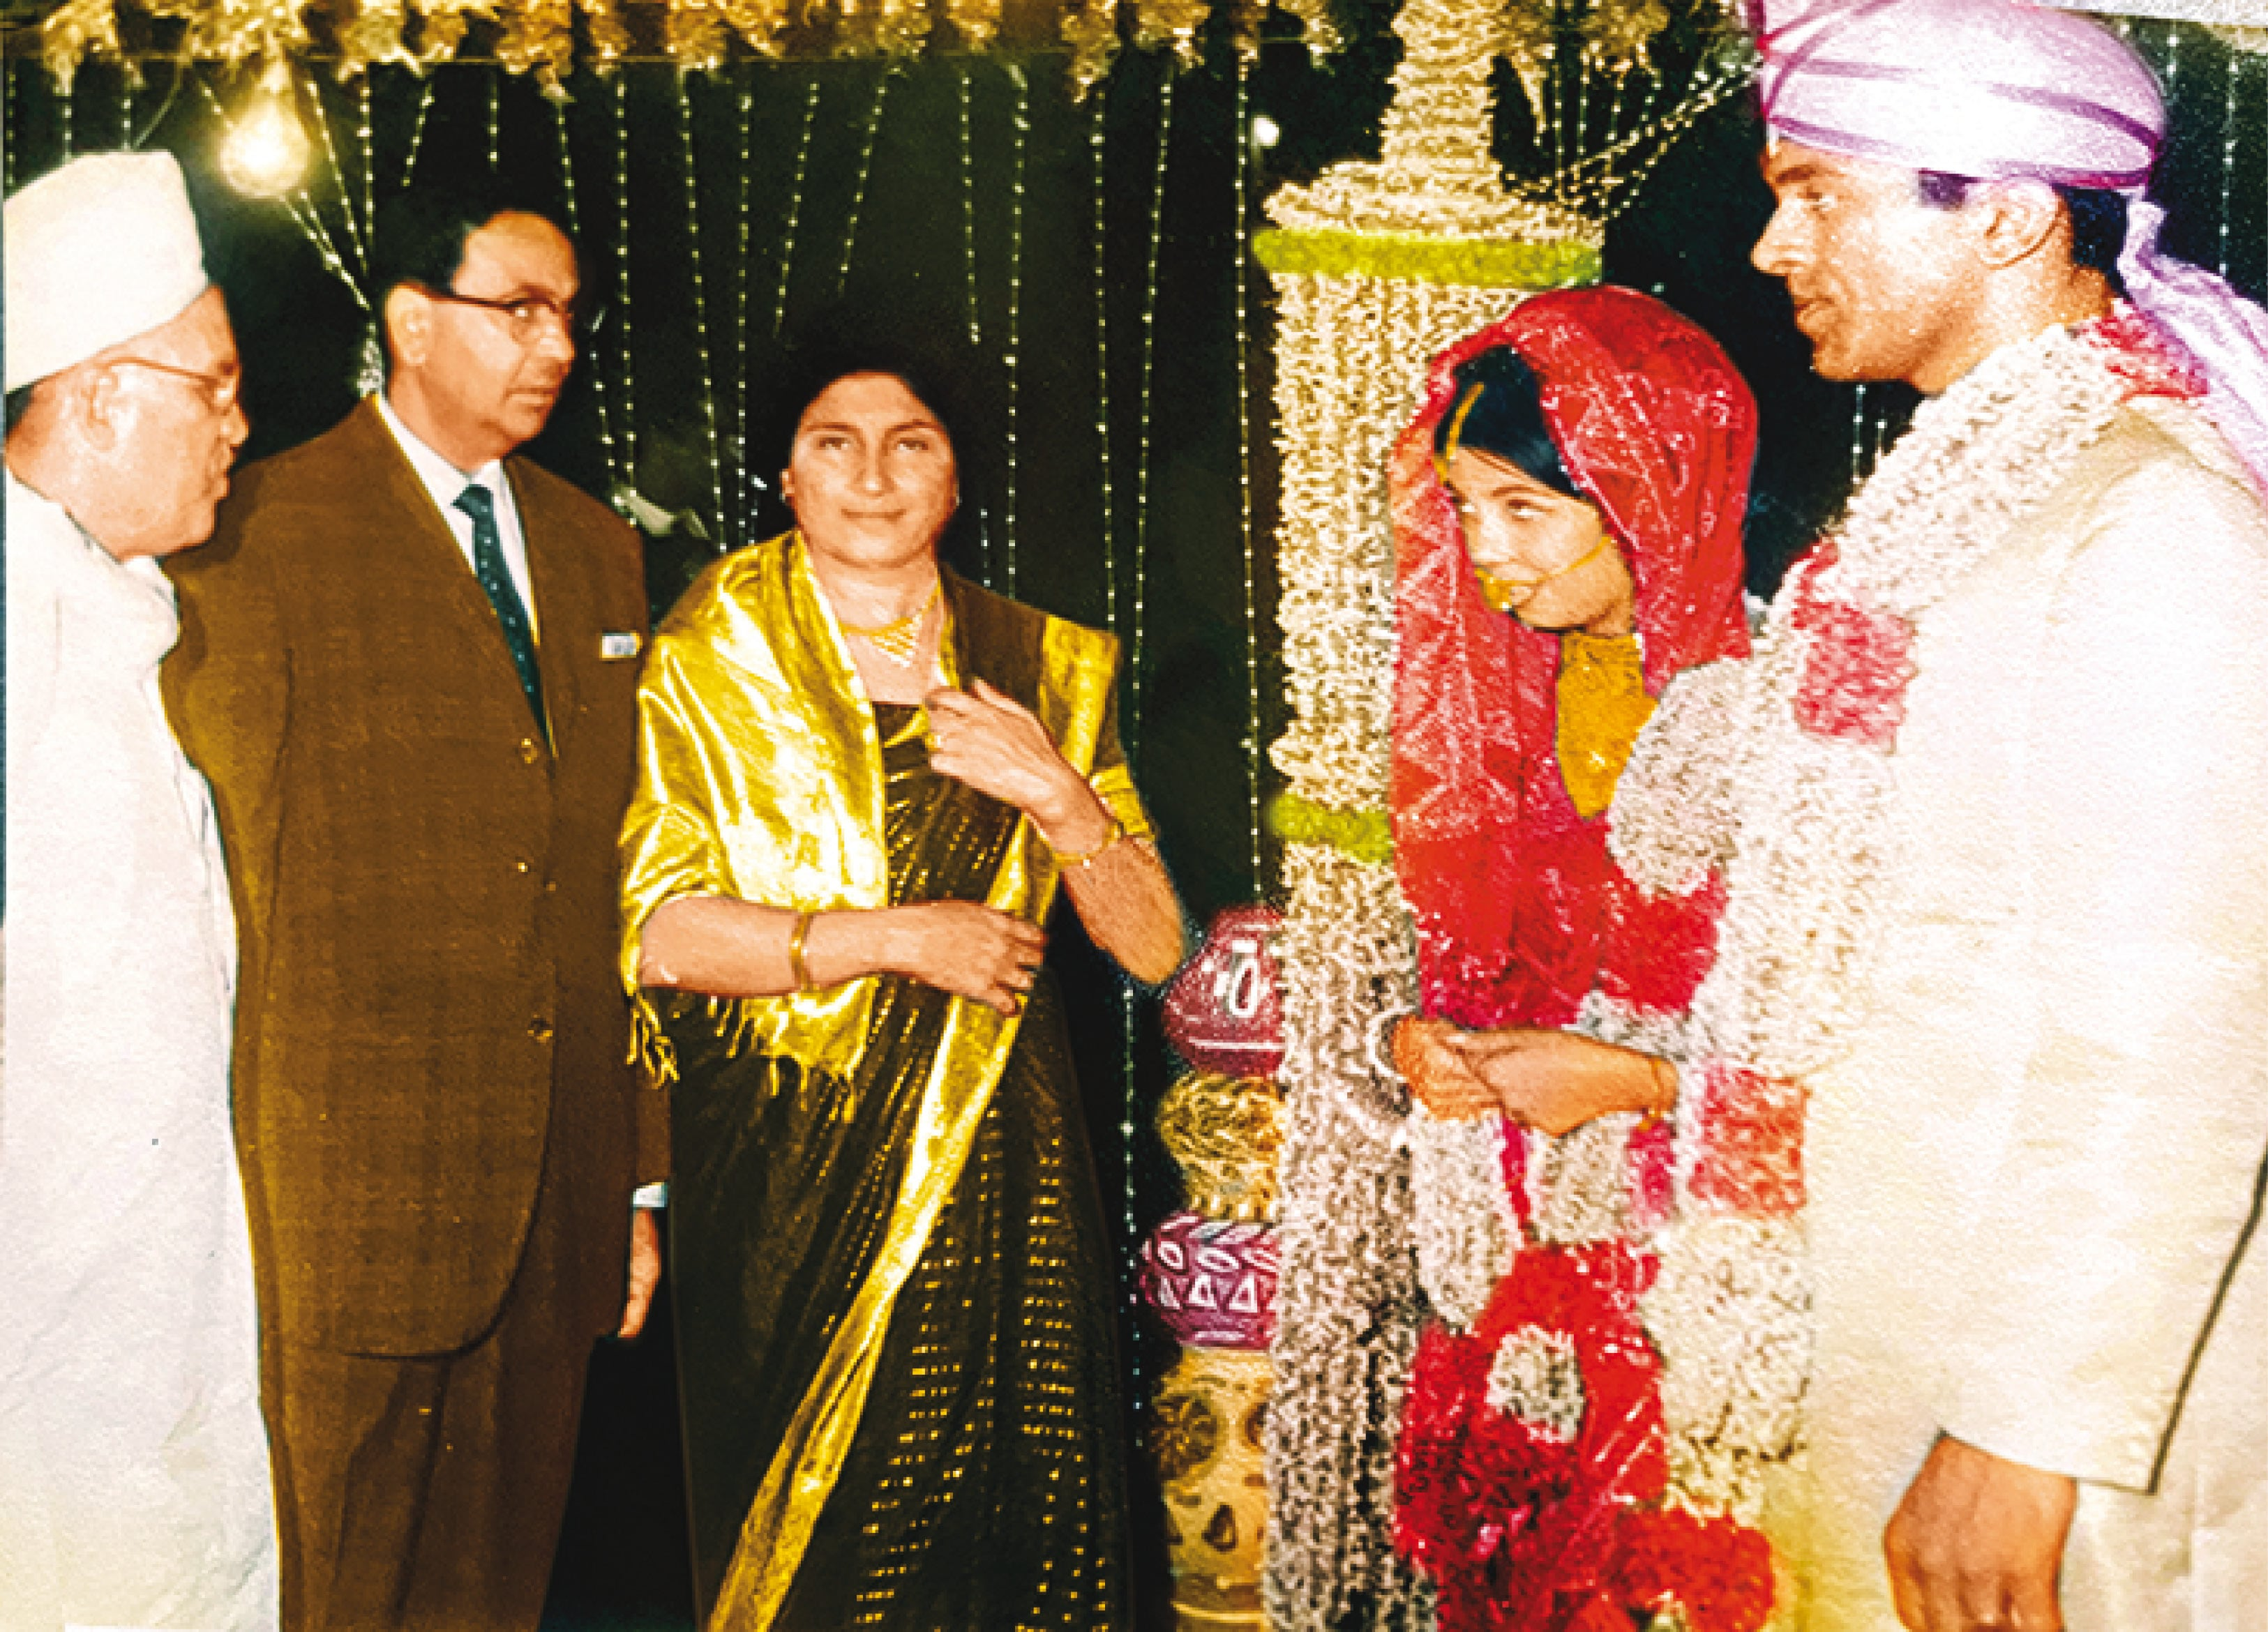 Ritu on the day of her wedding with her husband, Shashi Kumar, and her parents wearing the sari she had designed herself